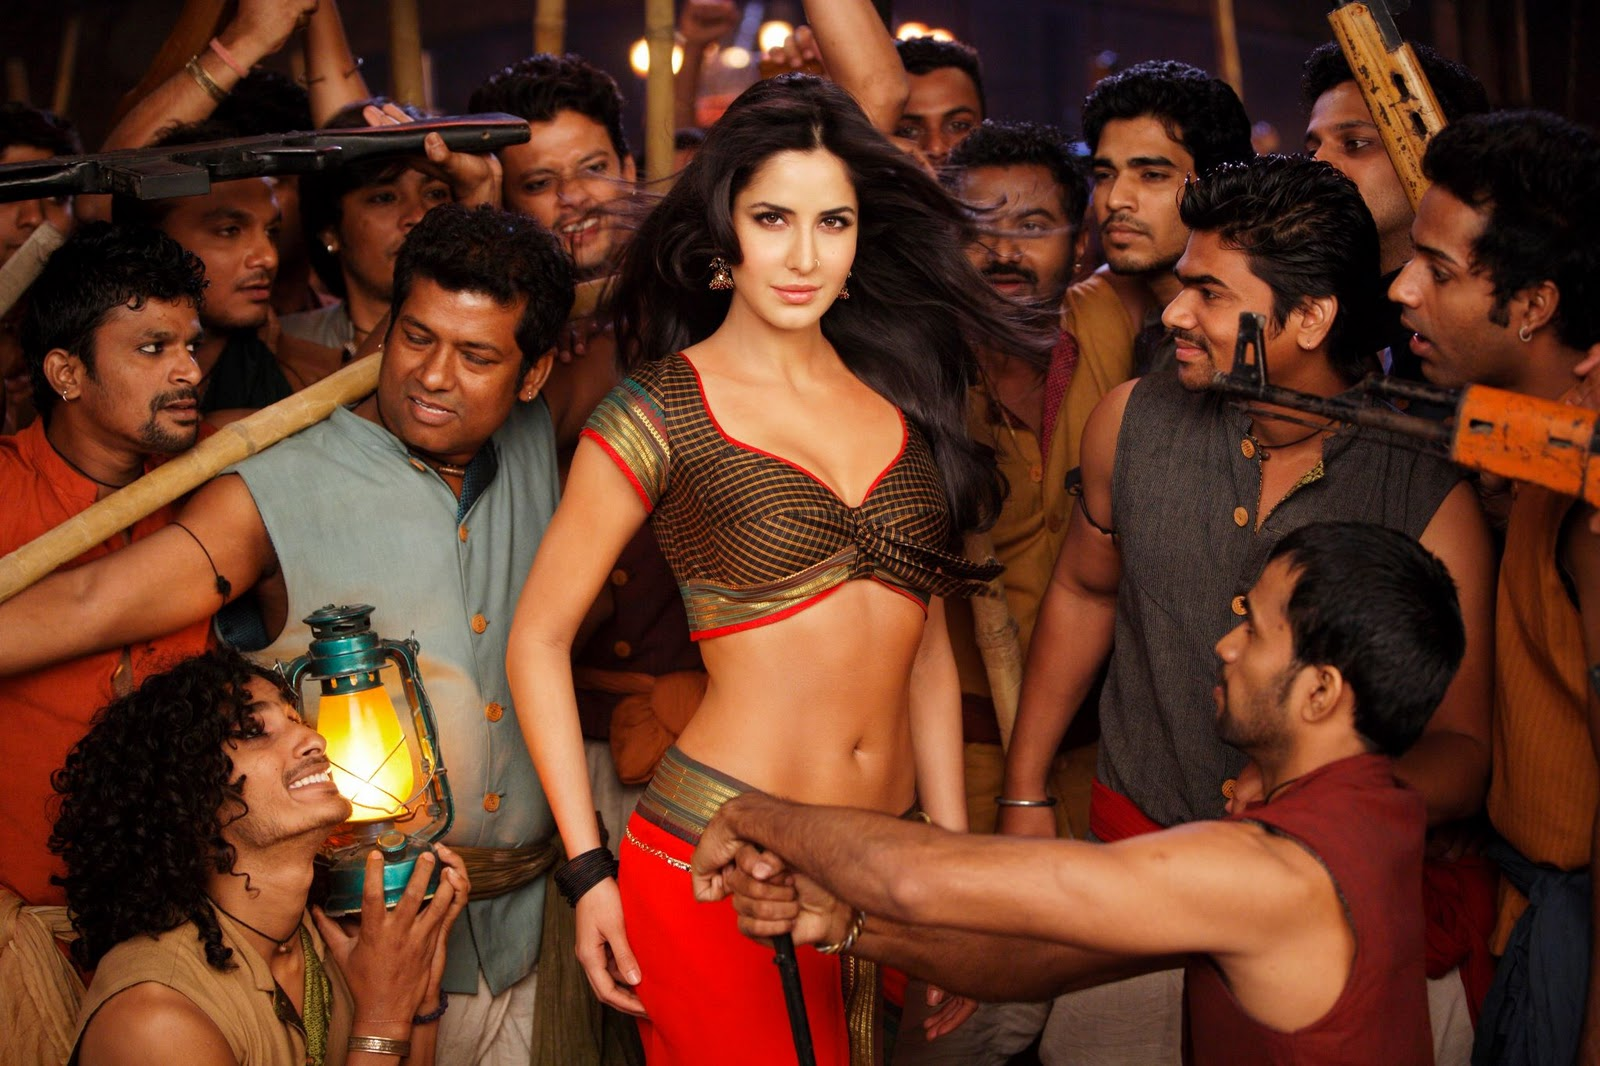 Katrina Kaif for Dharma Productions 'Agneepath' in the song 'Chikni Chameli'